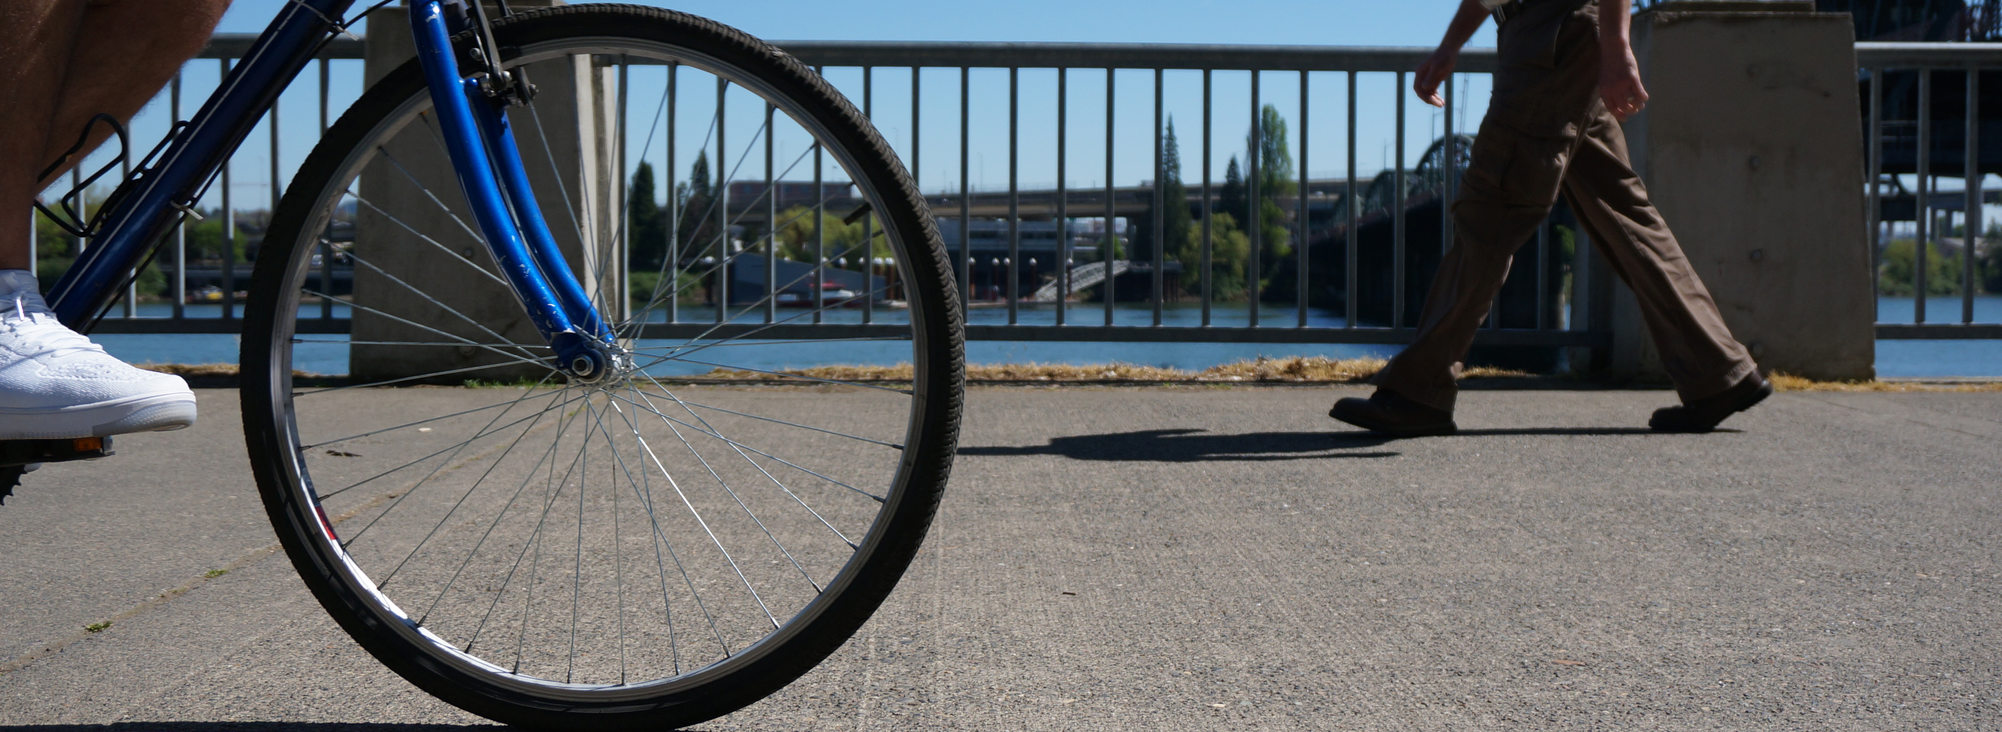 Bike wheel and man walking on Waterfront Park path, low-angle and wide.